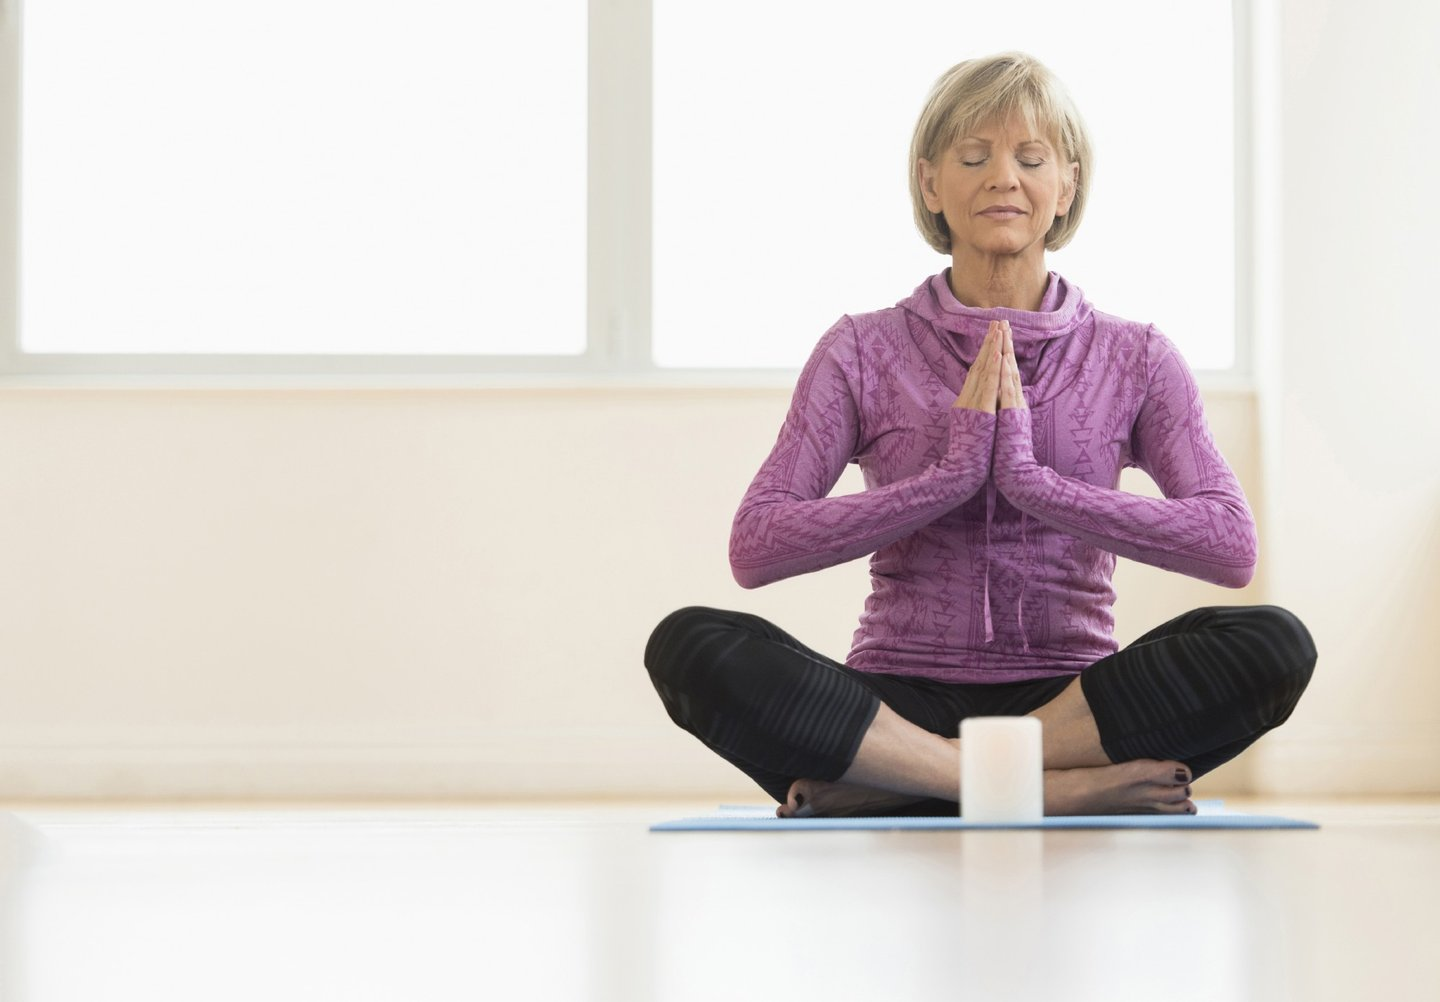 50s, 55-59 Years, Adult, Aging Process, Bangs, Blond Hair, Body Care, Body Conscious, Candle, Casual, Caucasian, Concentration, Cross-Legged, Day, Exercise Mat, Exercising, Eyes Closed, Female, Floor, Front View, Full Length, Hands Clasped, Healthy Lifestyle, Home Interior, Horizontal, Indoors, Leisure Activity, Lifestyles, Mature Adult, Mature Women, Meditating, One Mature Woman Only, One Person, One Woman Only, Only Mature Women, Only Women, People, Posture, Relaxation, Relaxation Exercise, Routine, Selective Focus, Short Hair, Sitting, Spirituality, Wellbeing, Window, Women, Yoga, Zen-Like,